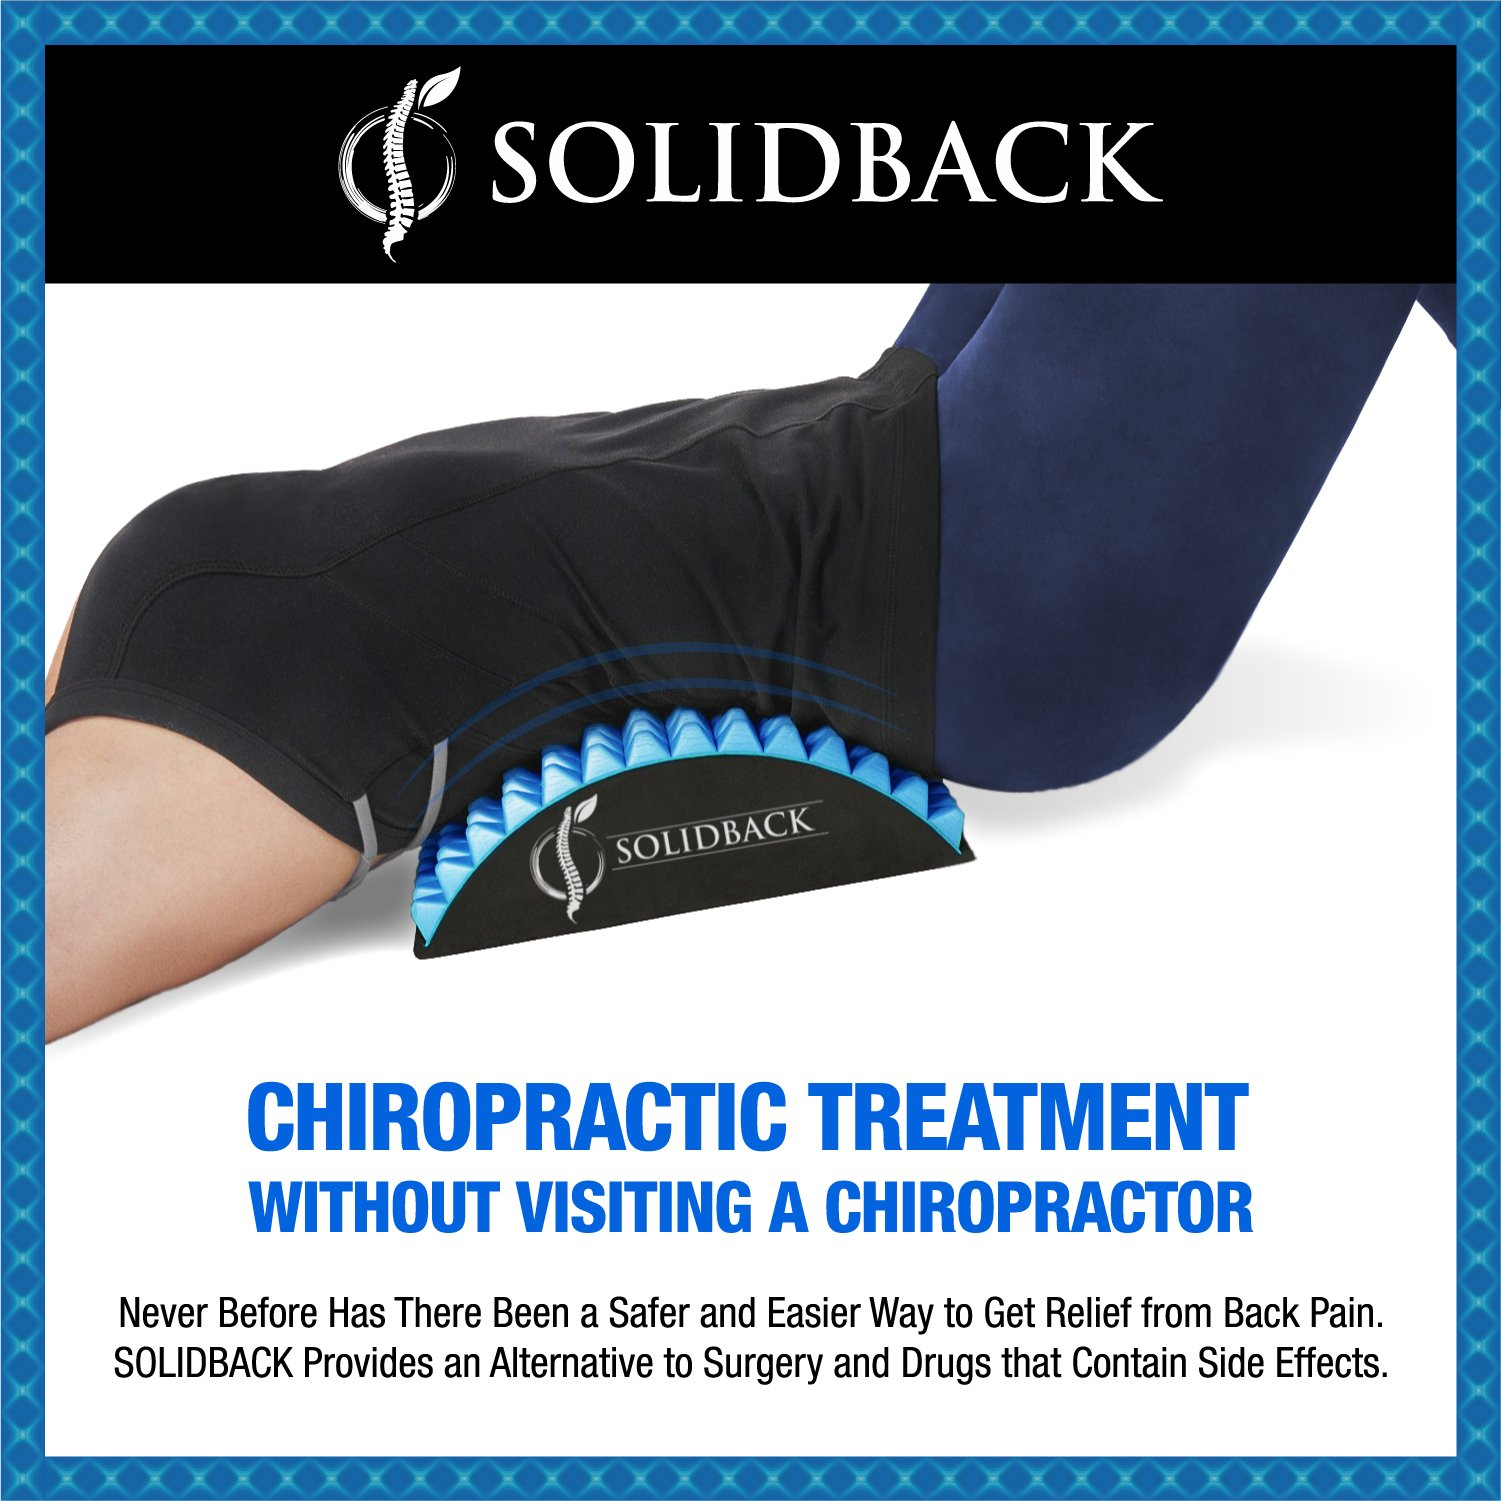 Solidback Lower Back Pain Relief Treatment Stretcher